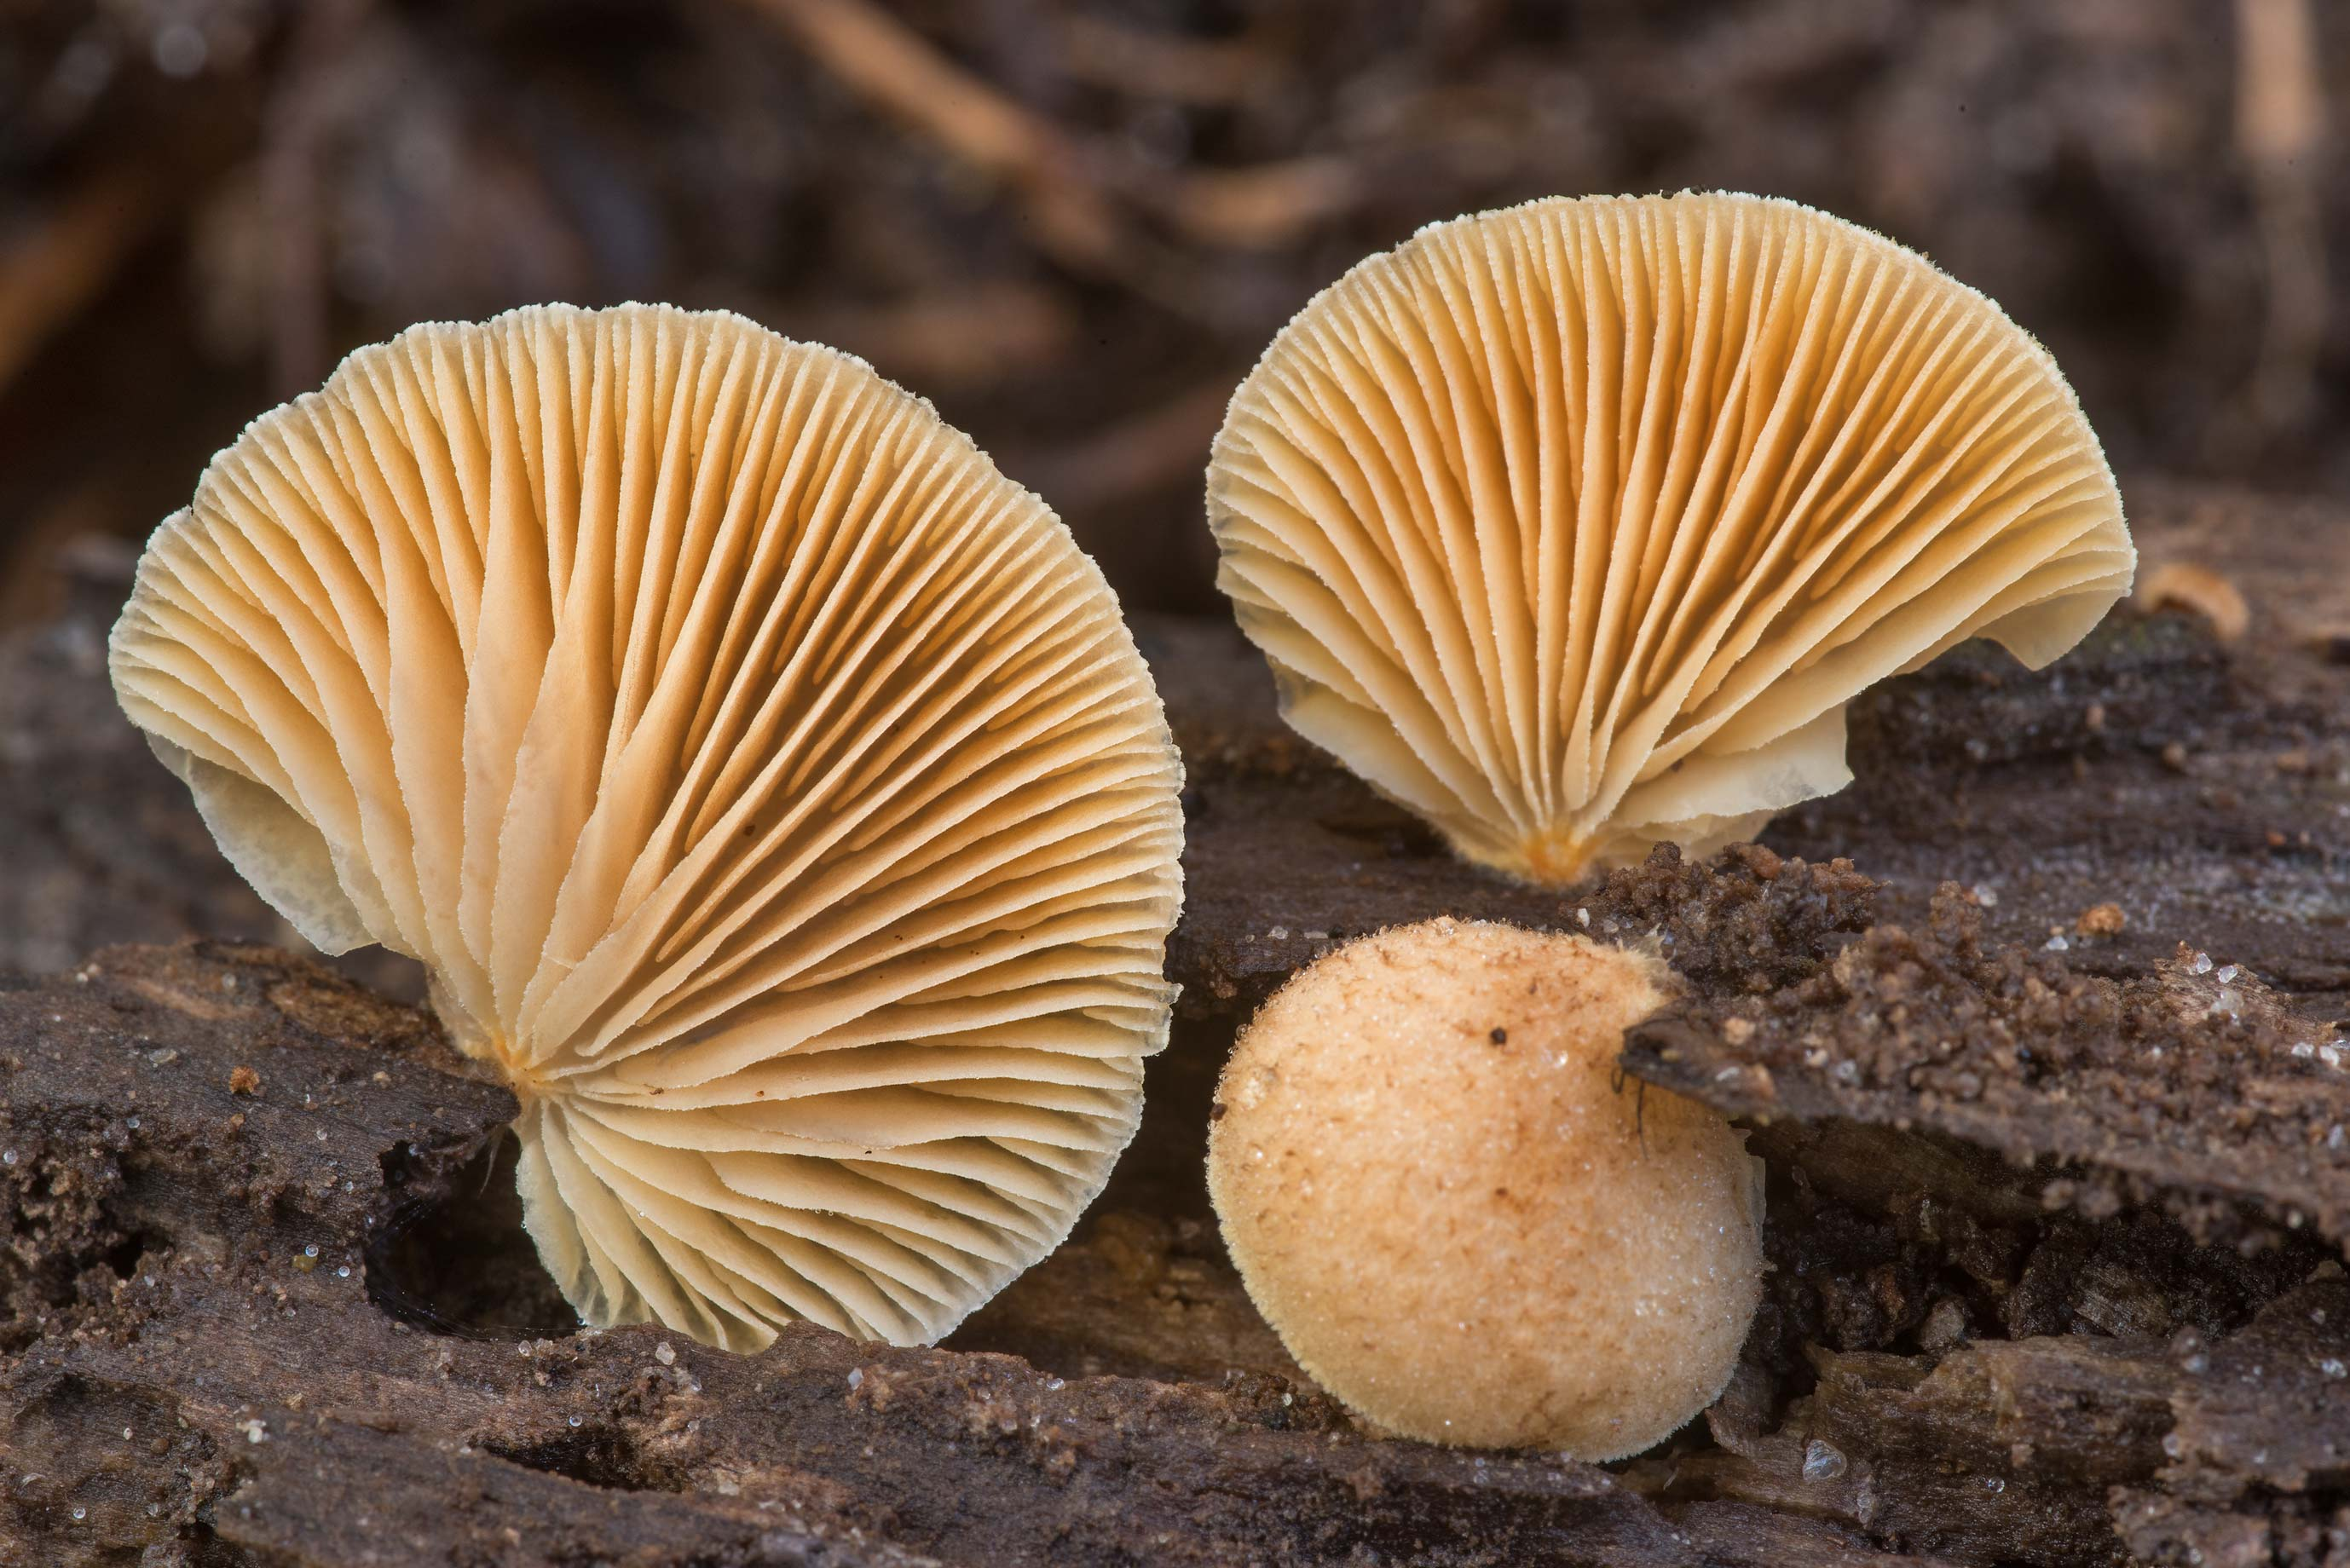 Oysterling mushrooms Crepidotus mollis on Caney...Forest north from Monrgomery. Texas